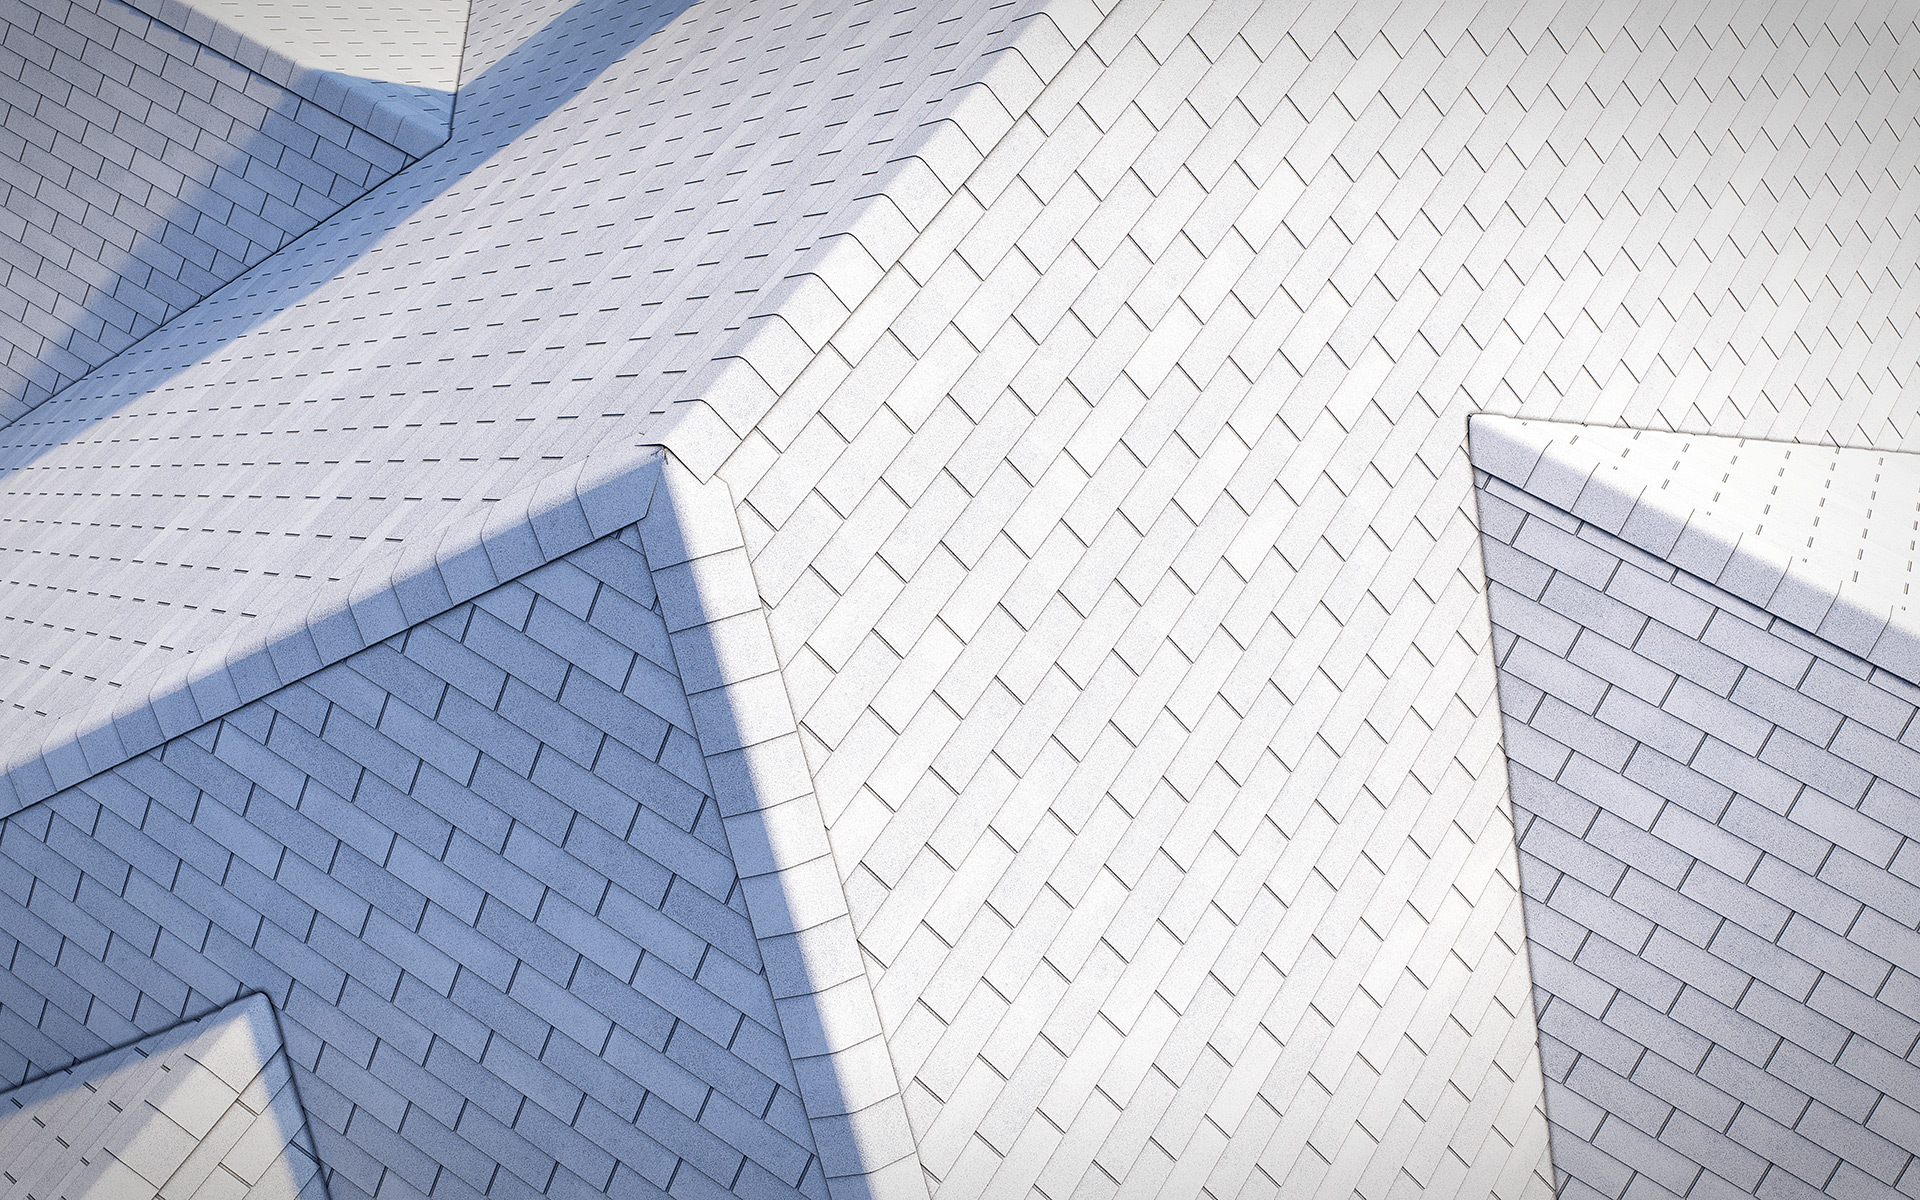 3-tab asphalt roof shingles white color 3D model preset for 3dsmax and RailClone. Rendered with vray, made for arch-viz.